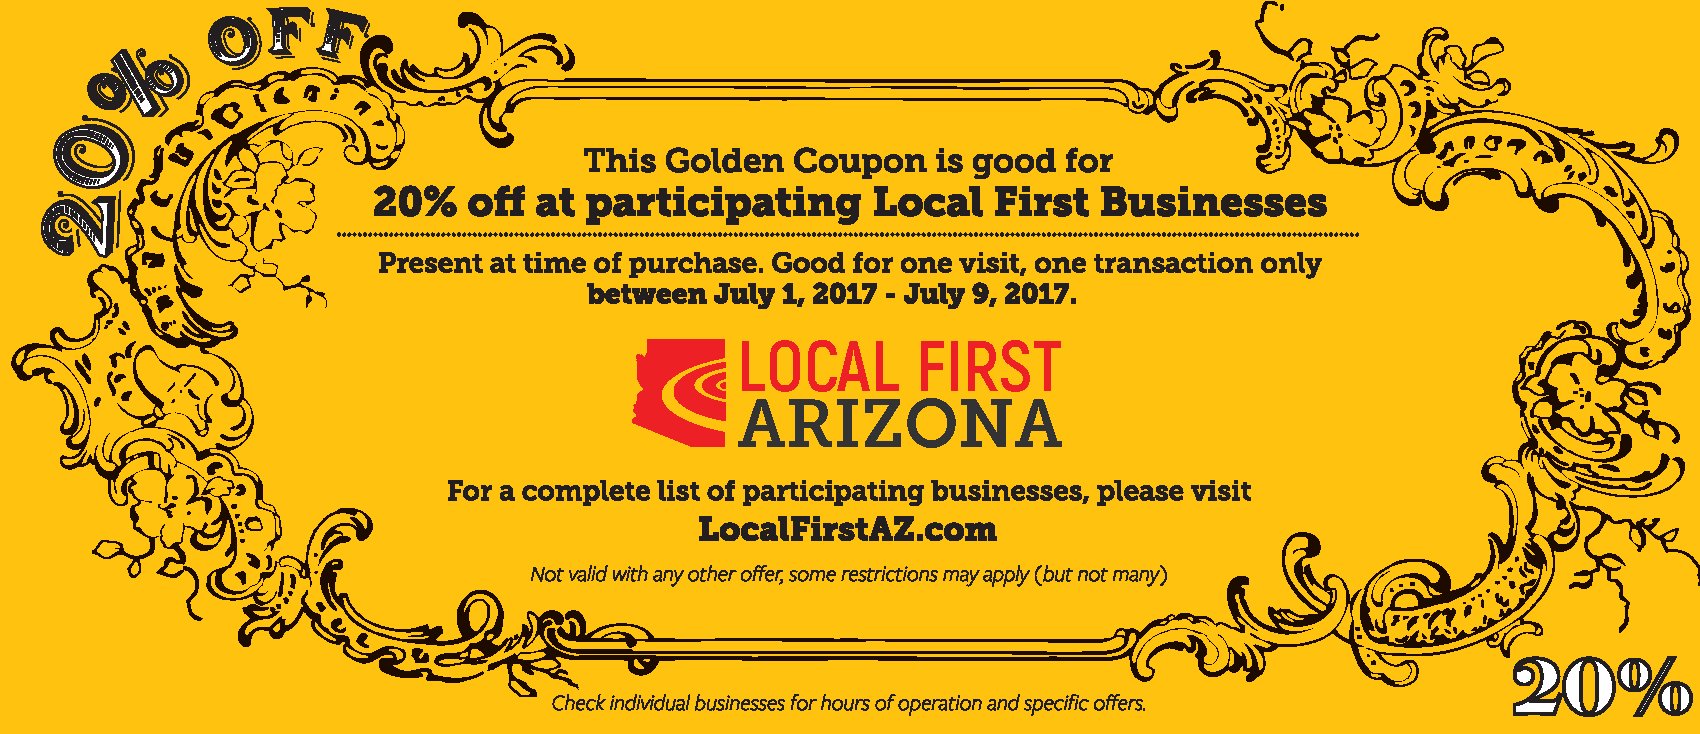 GoldenCoupon_2017-Complete.png